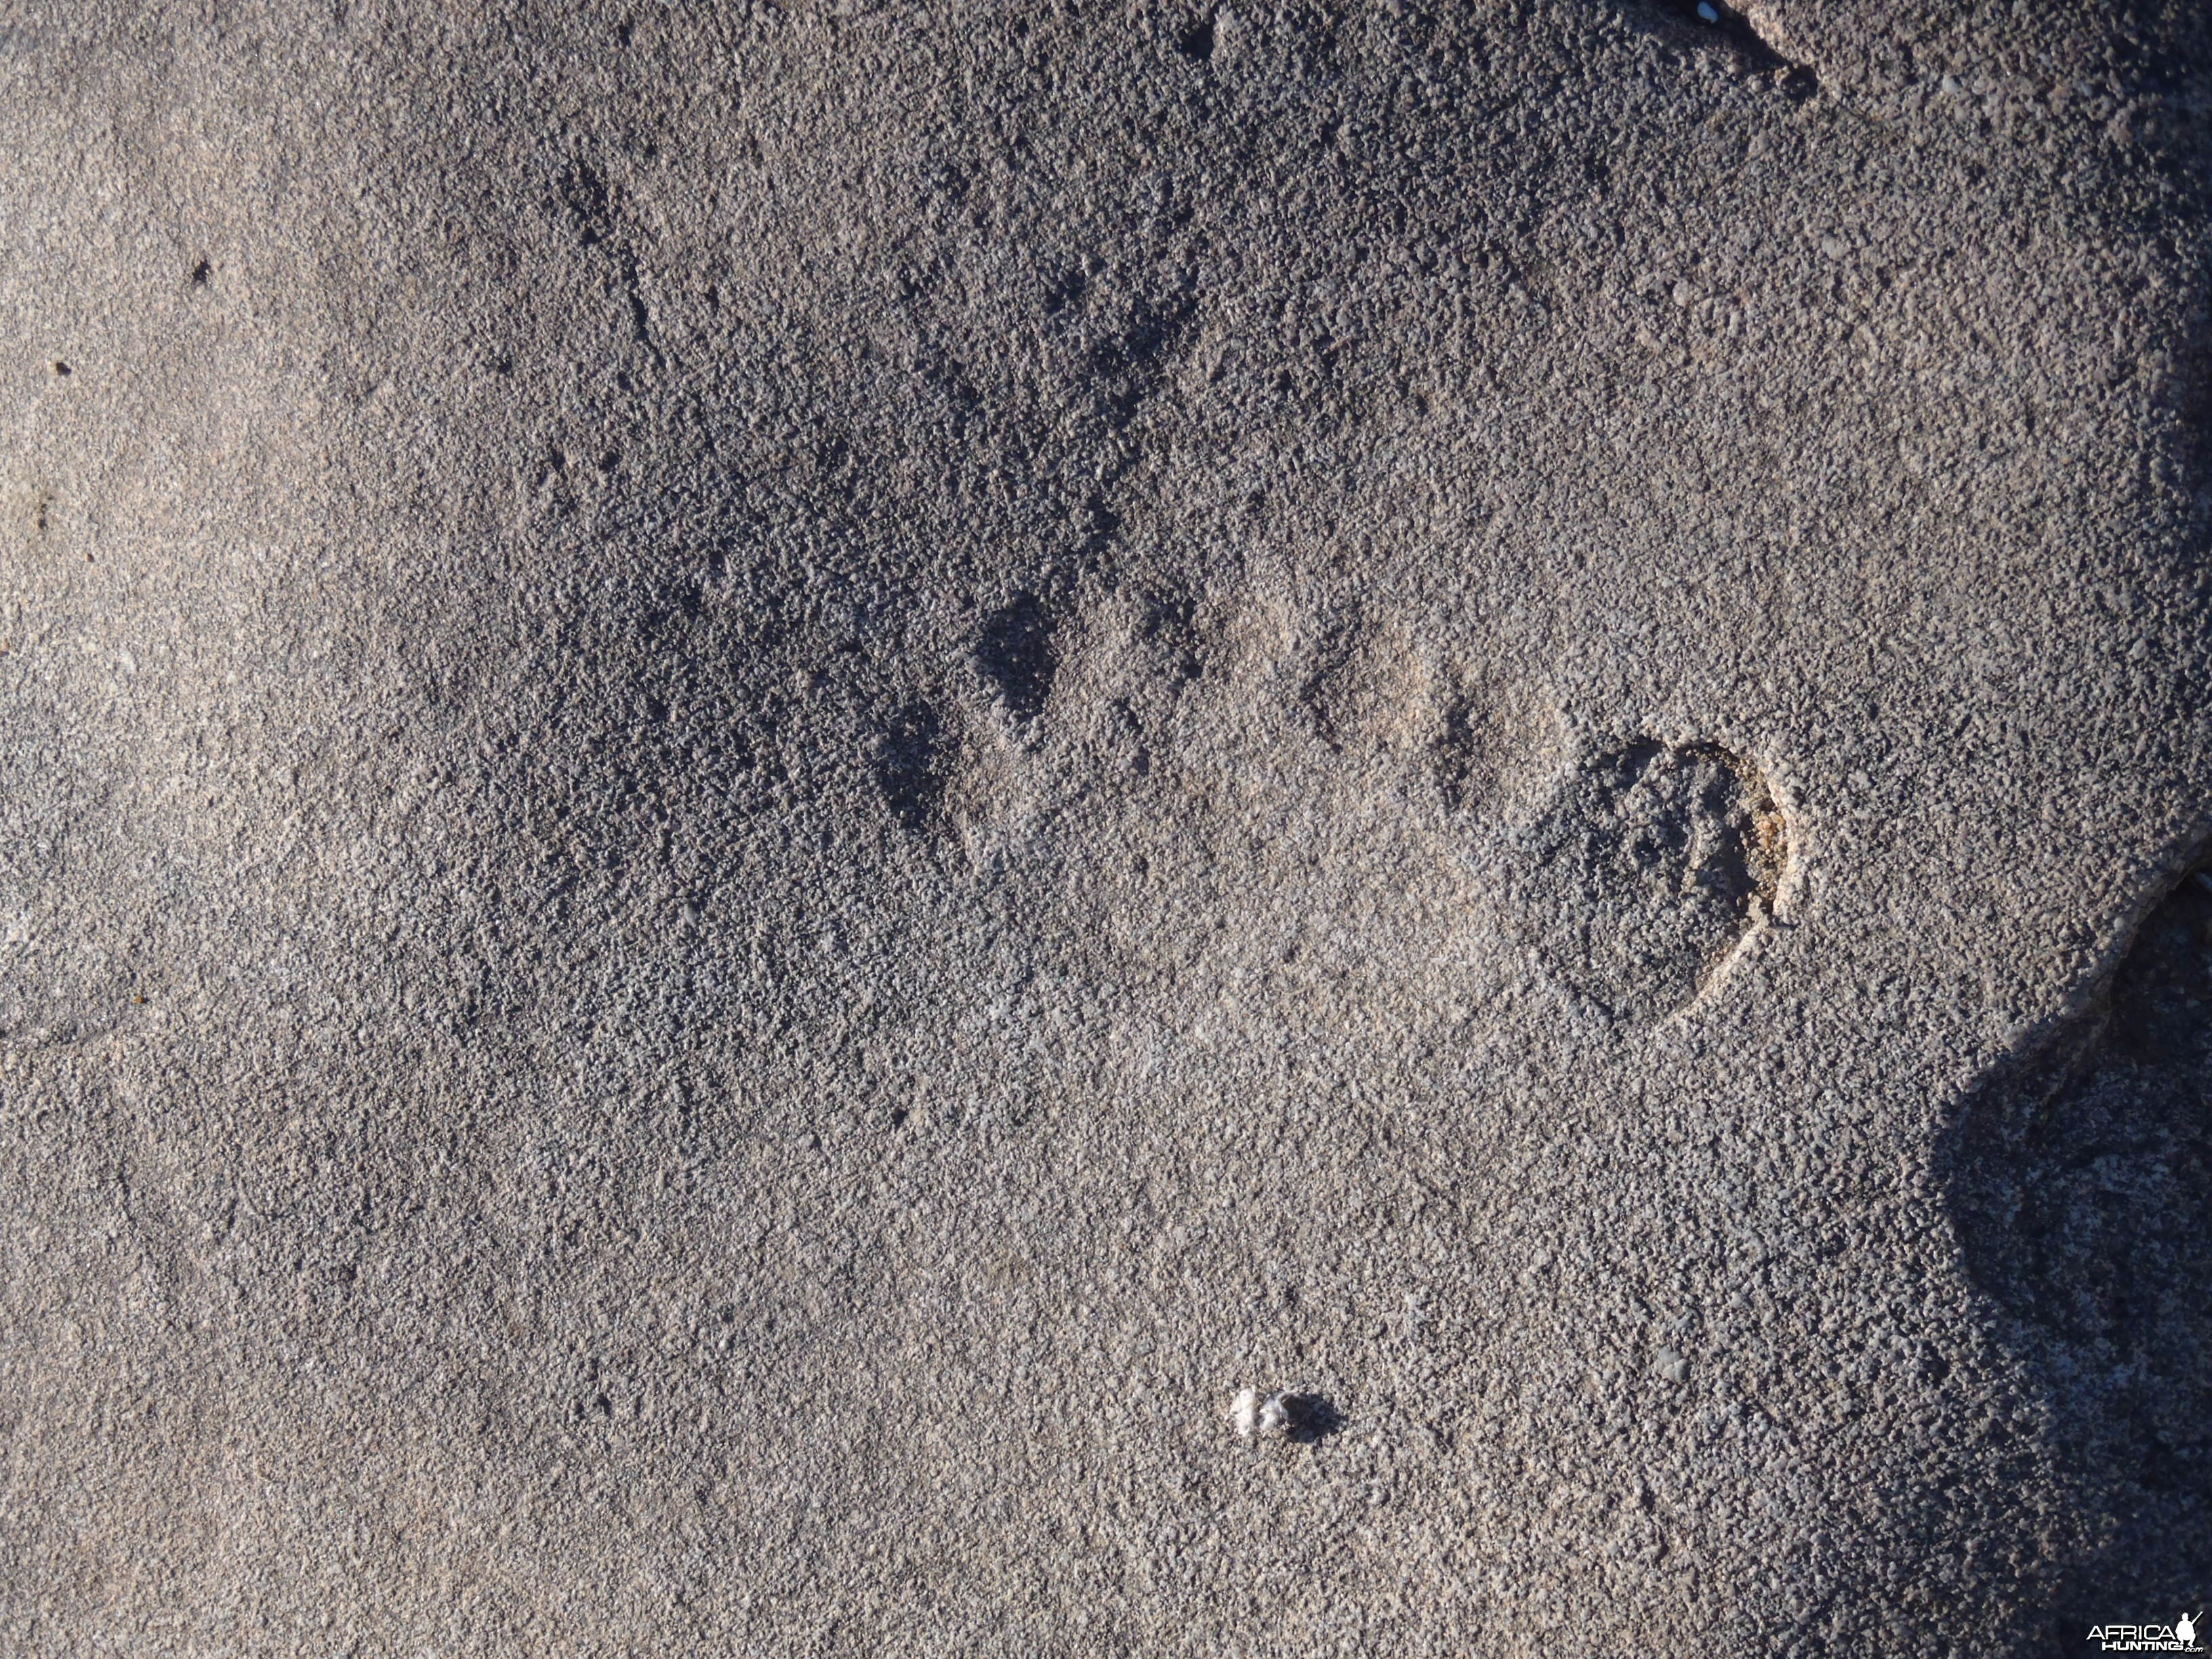 Lion print in the rock in Namibia